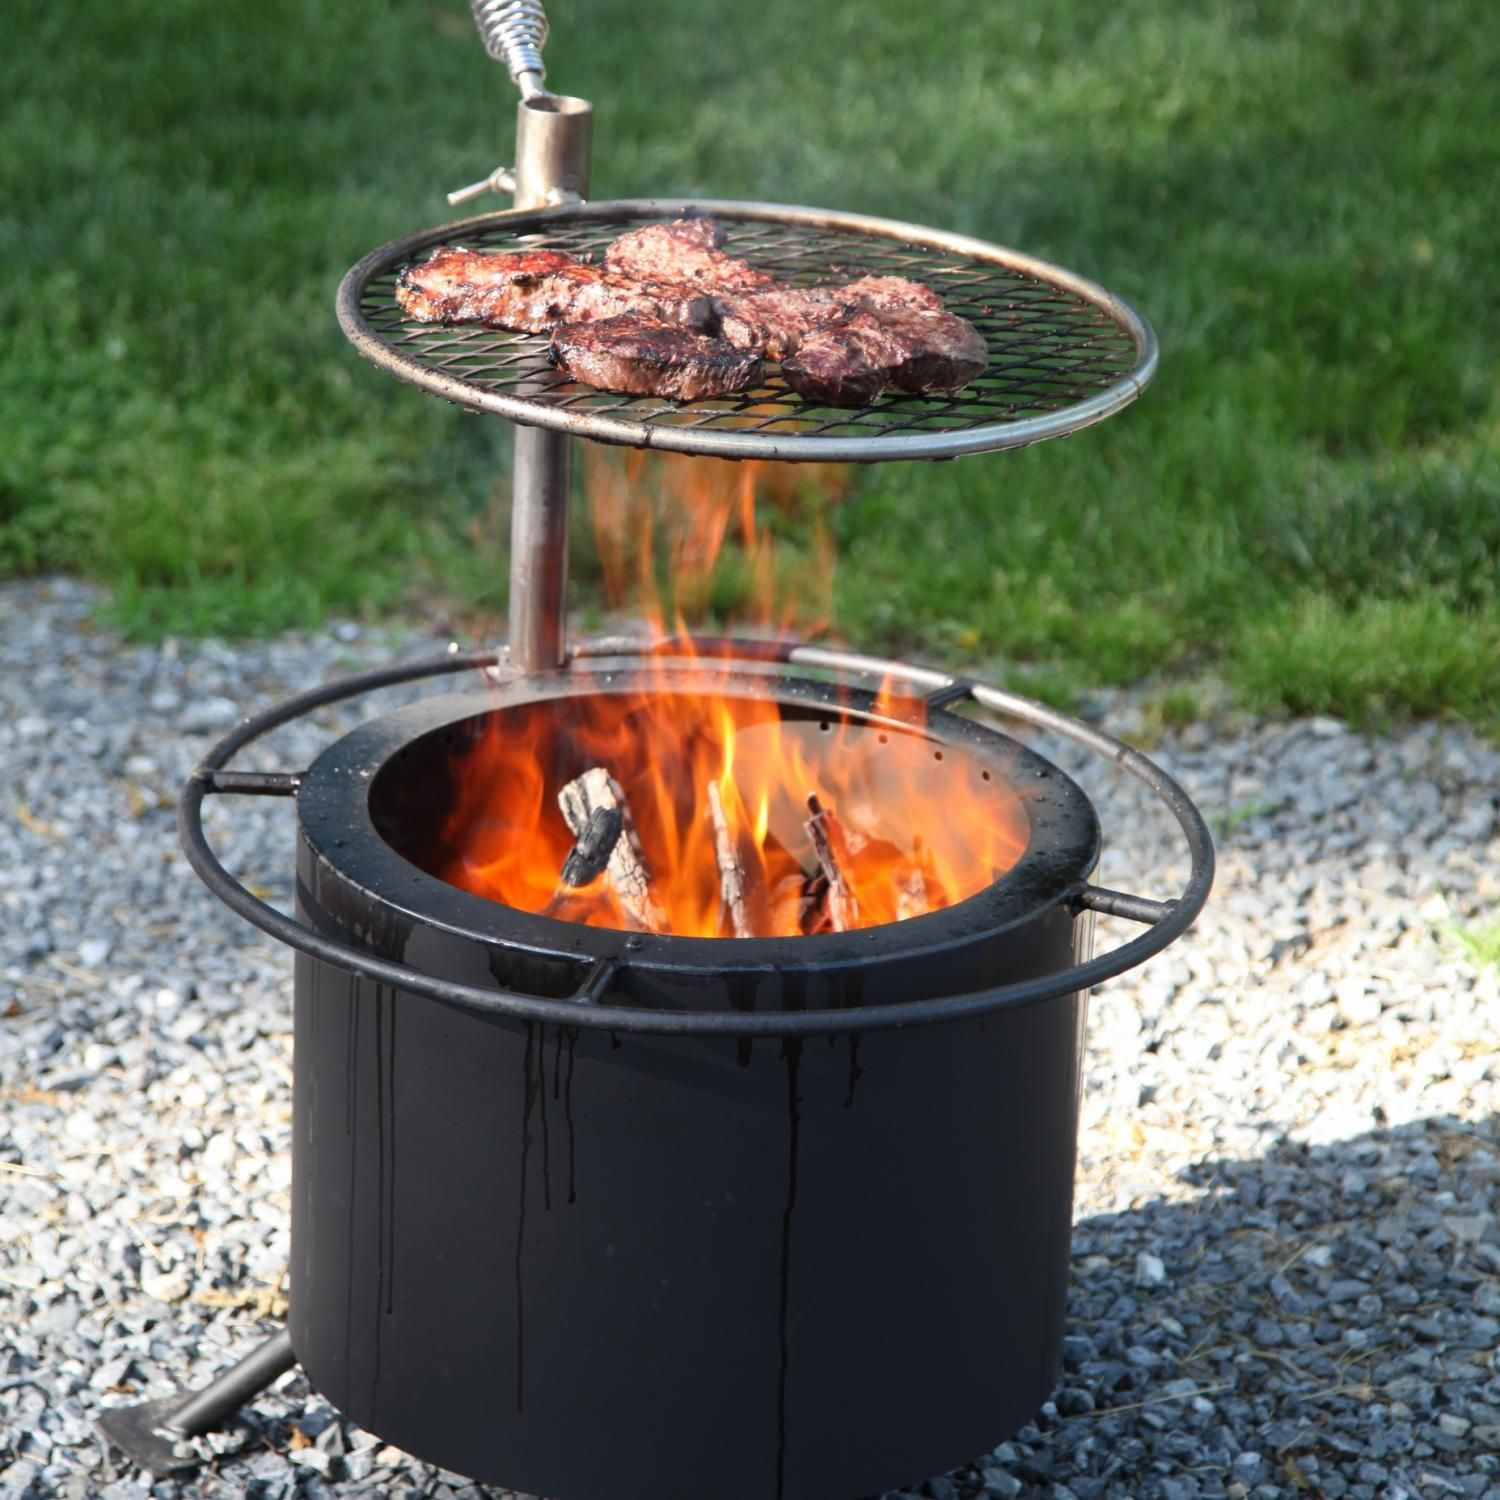 Double flame 15inch smokeless wood burning fire pit